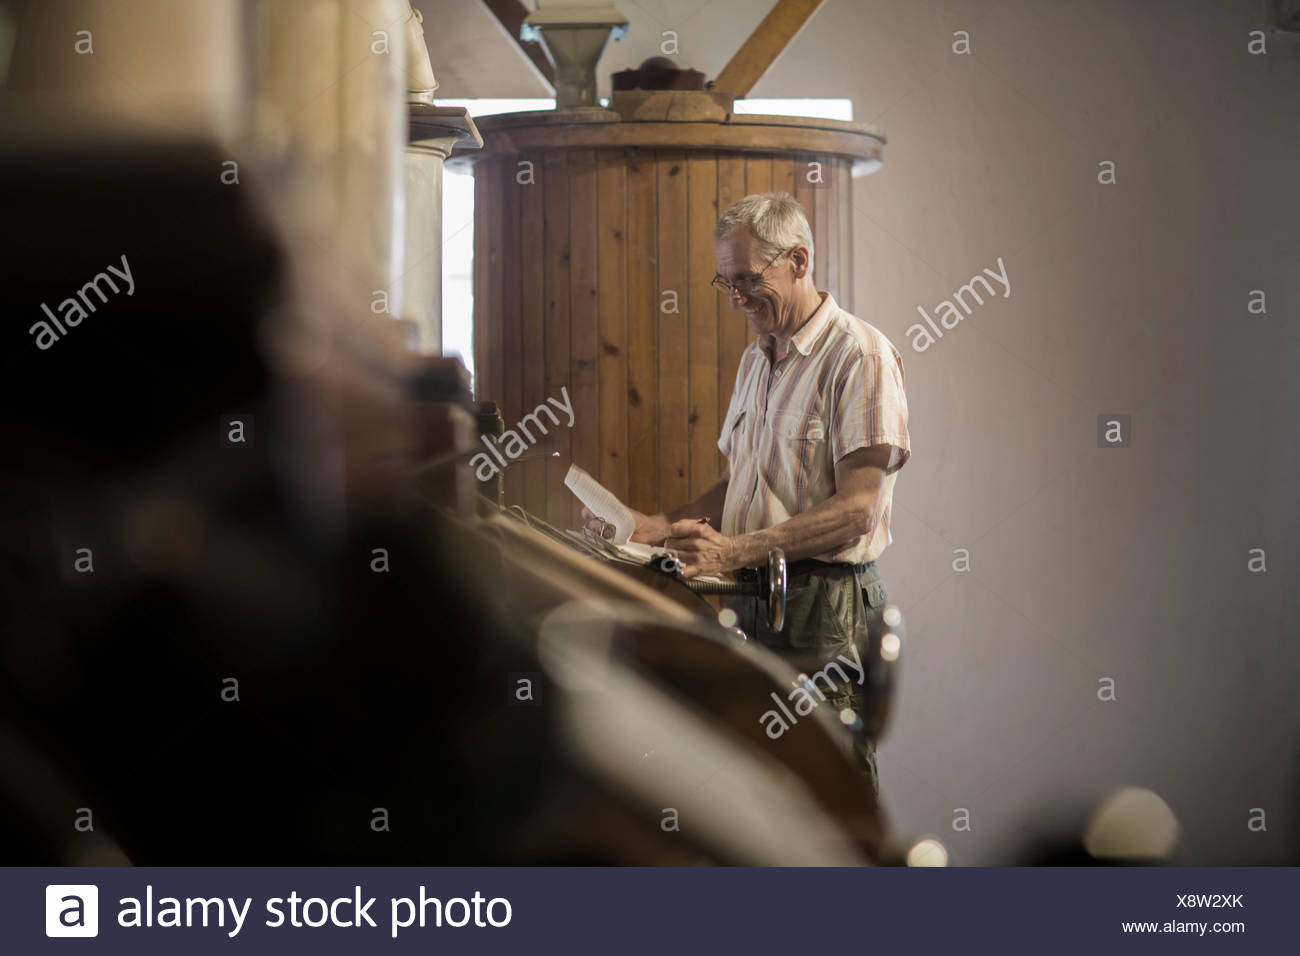 Male miller monitoring milling machine at wheat mill - Stock Image